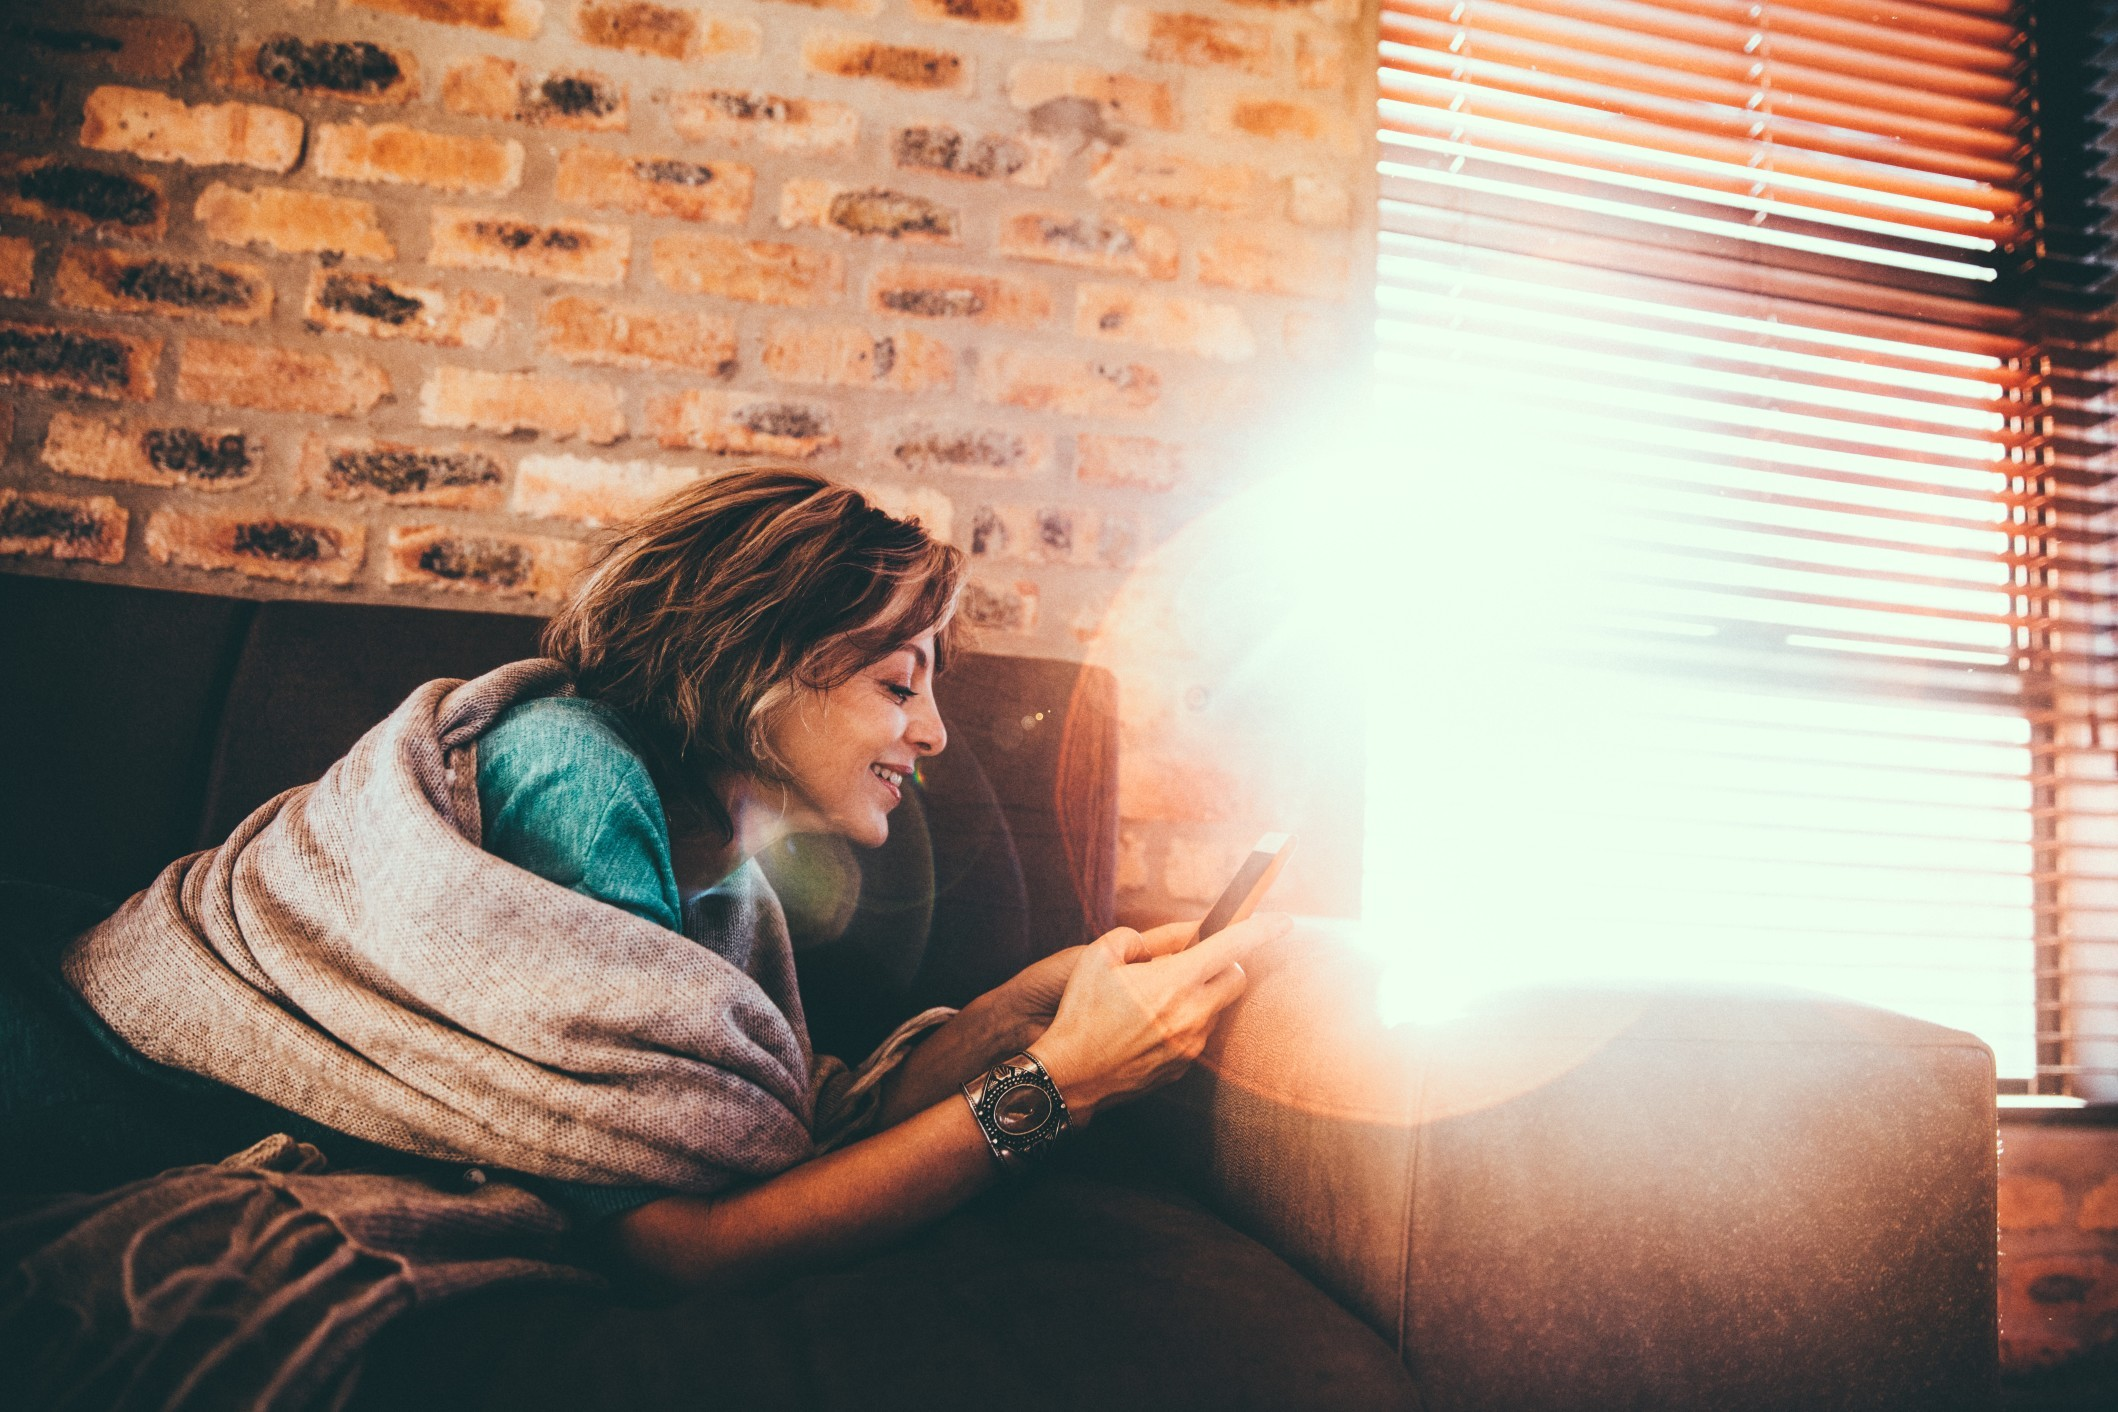 Women using mobile phone on couch at home with sun flare in background t20 Rw6o2w